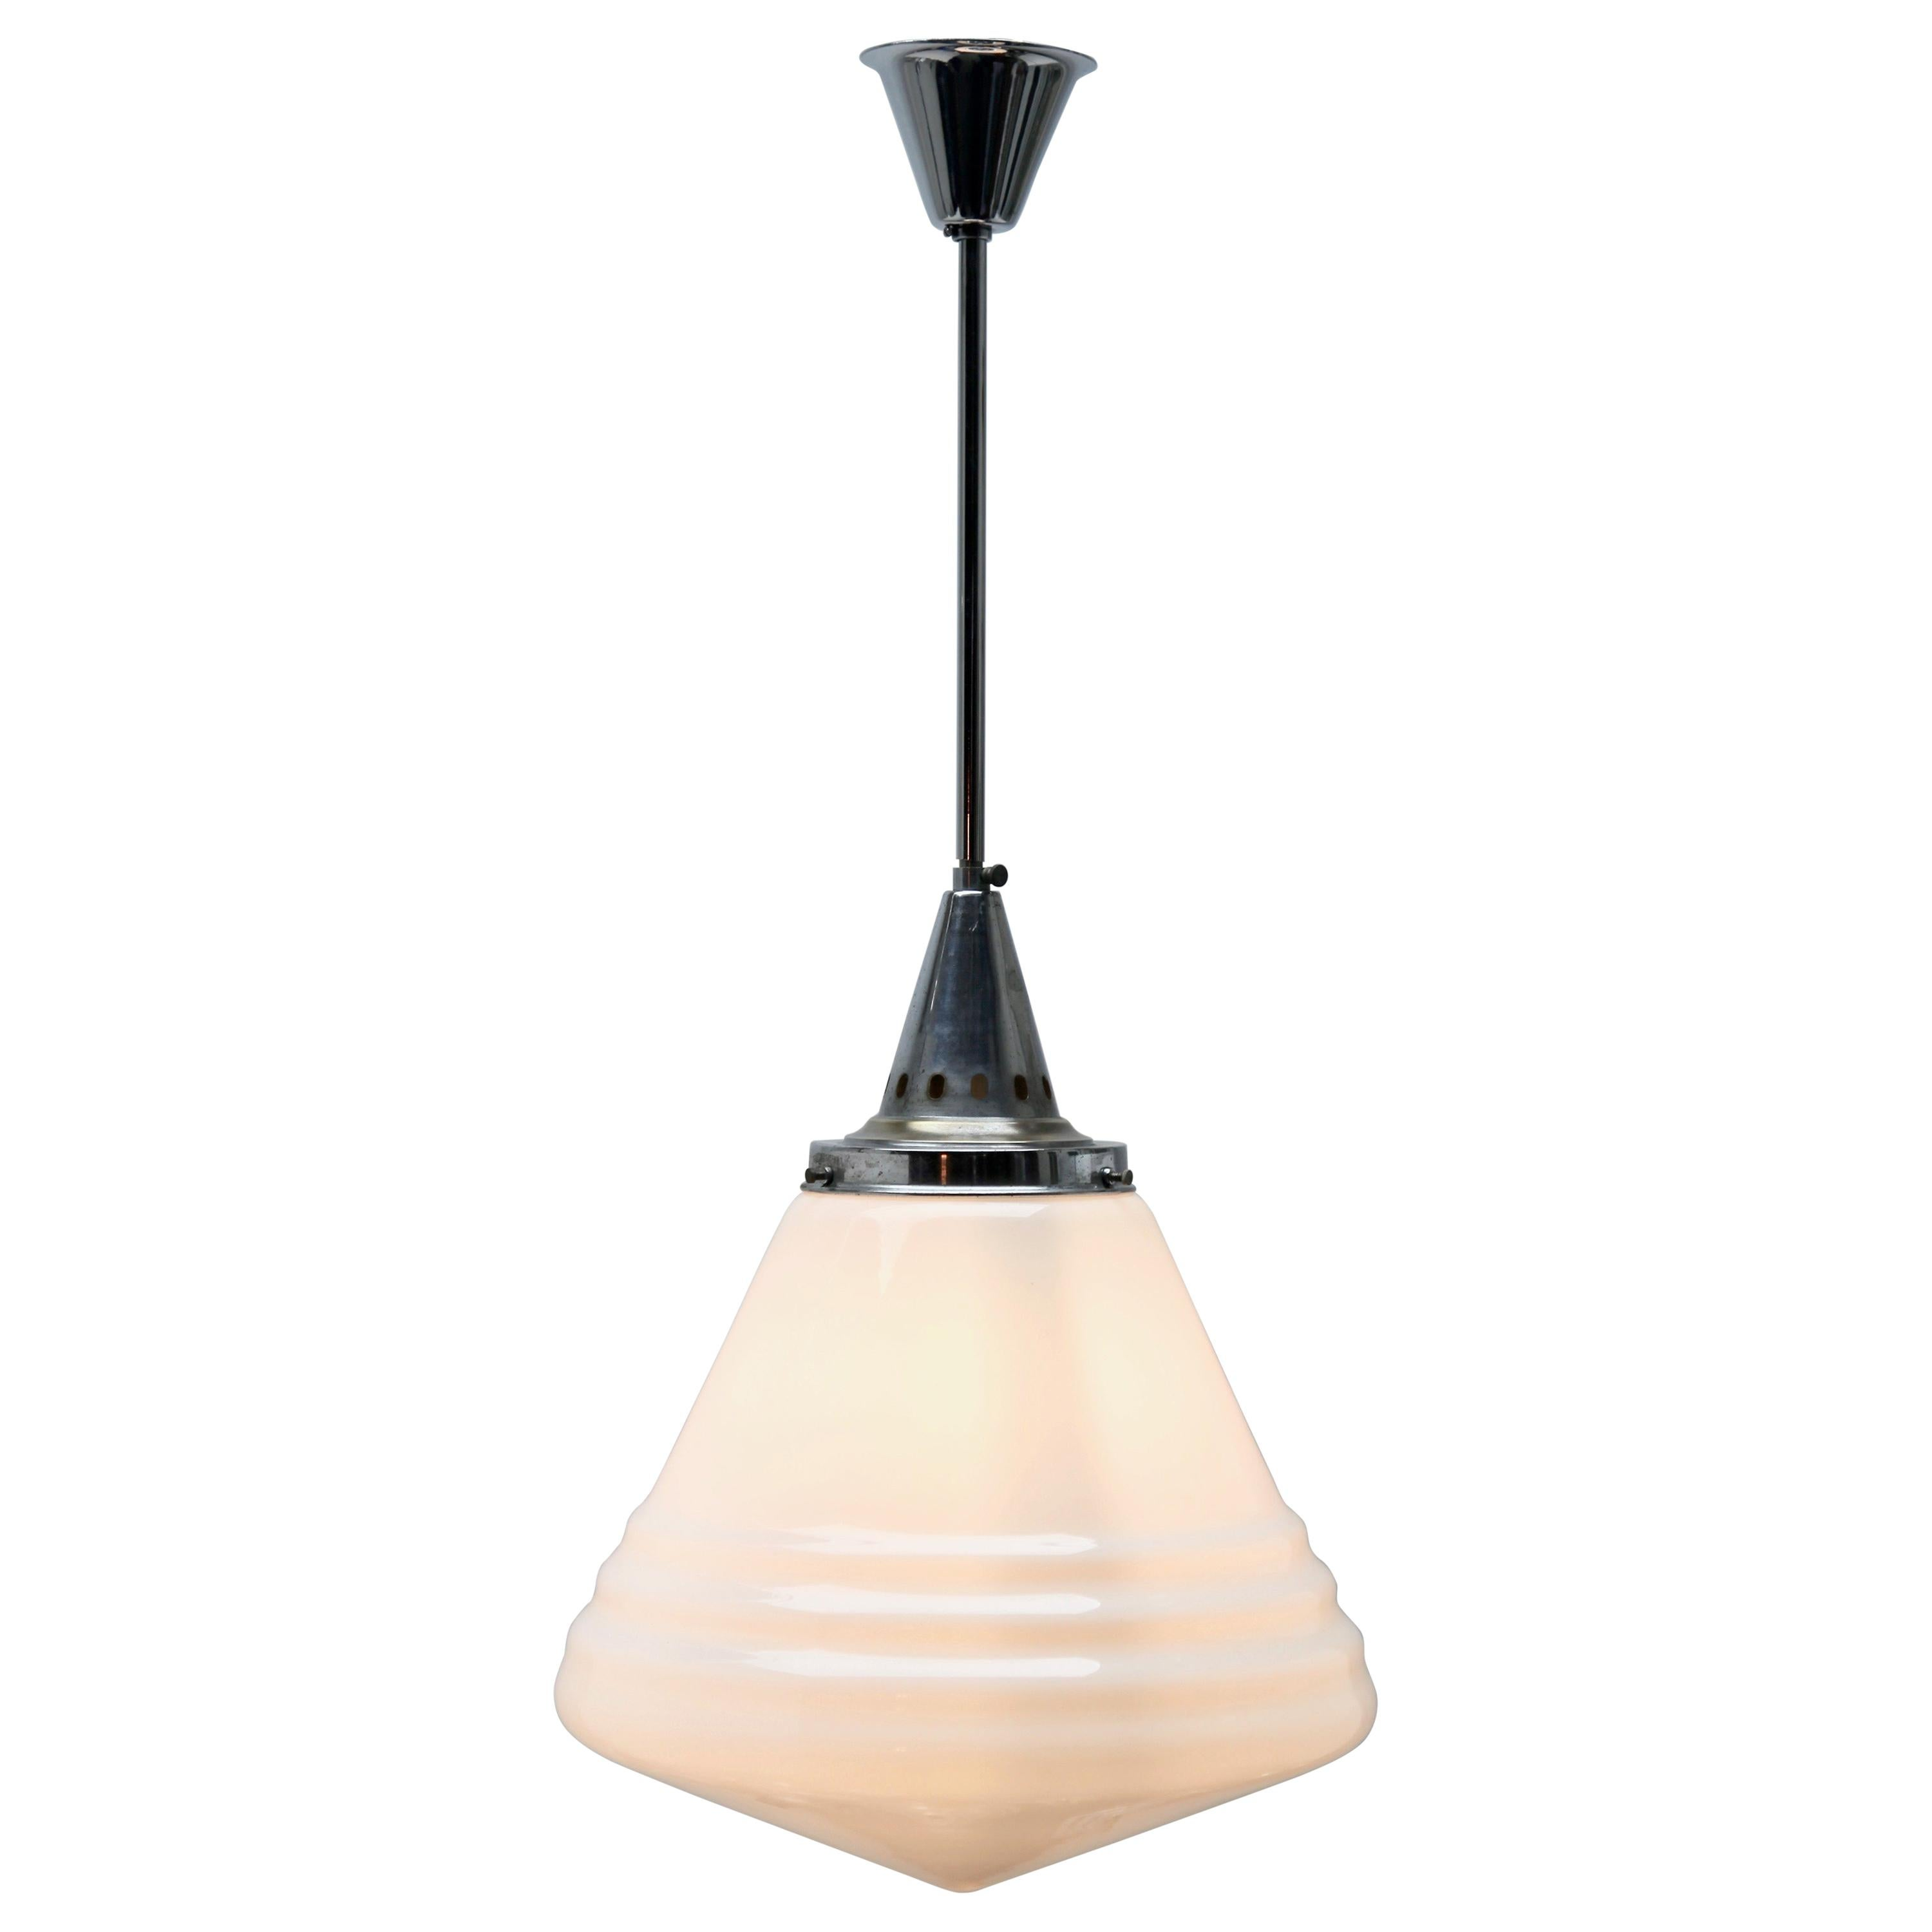 Phillips Pendant Stem Lamp with Large Stepped Opaline Shade, 1930s, Belgium